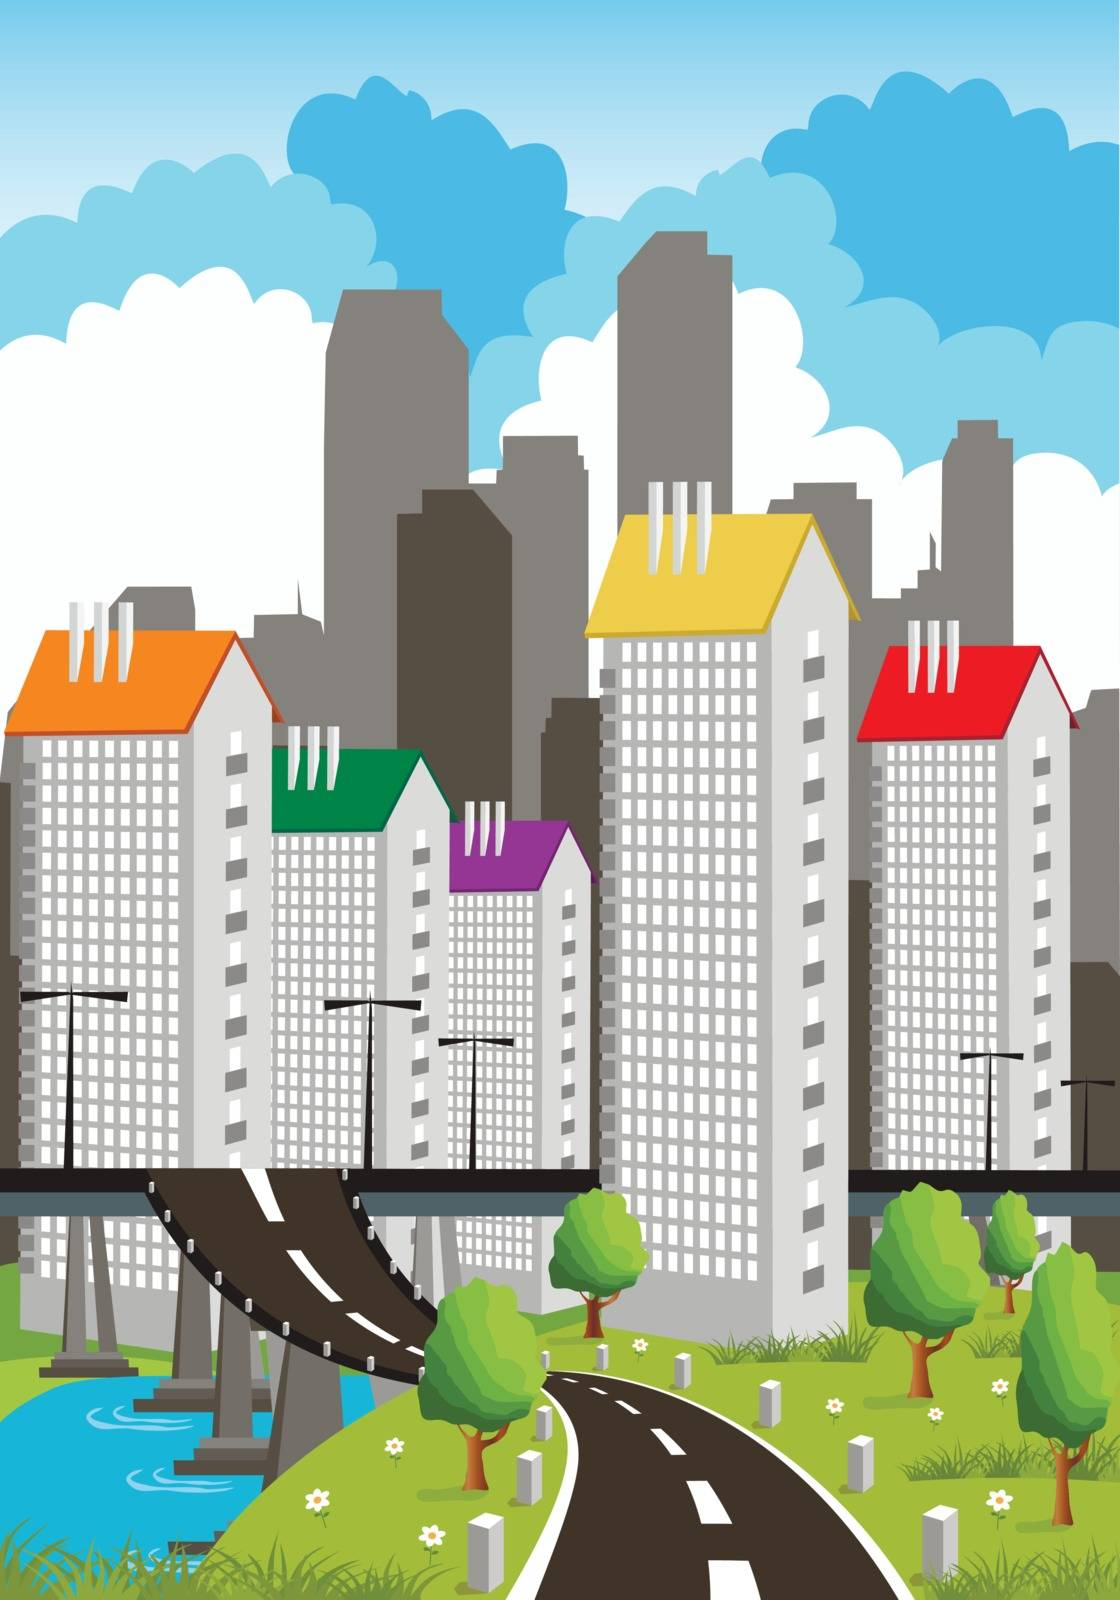 Cartoon illustration of a modern city with roads